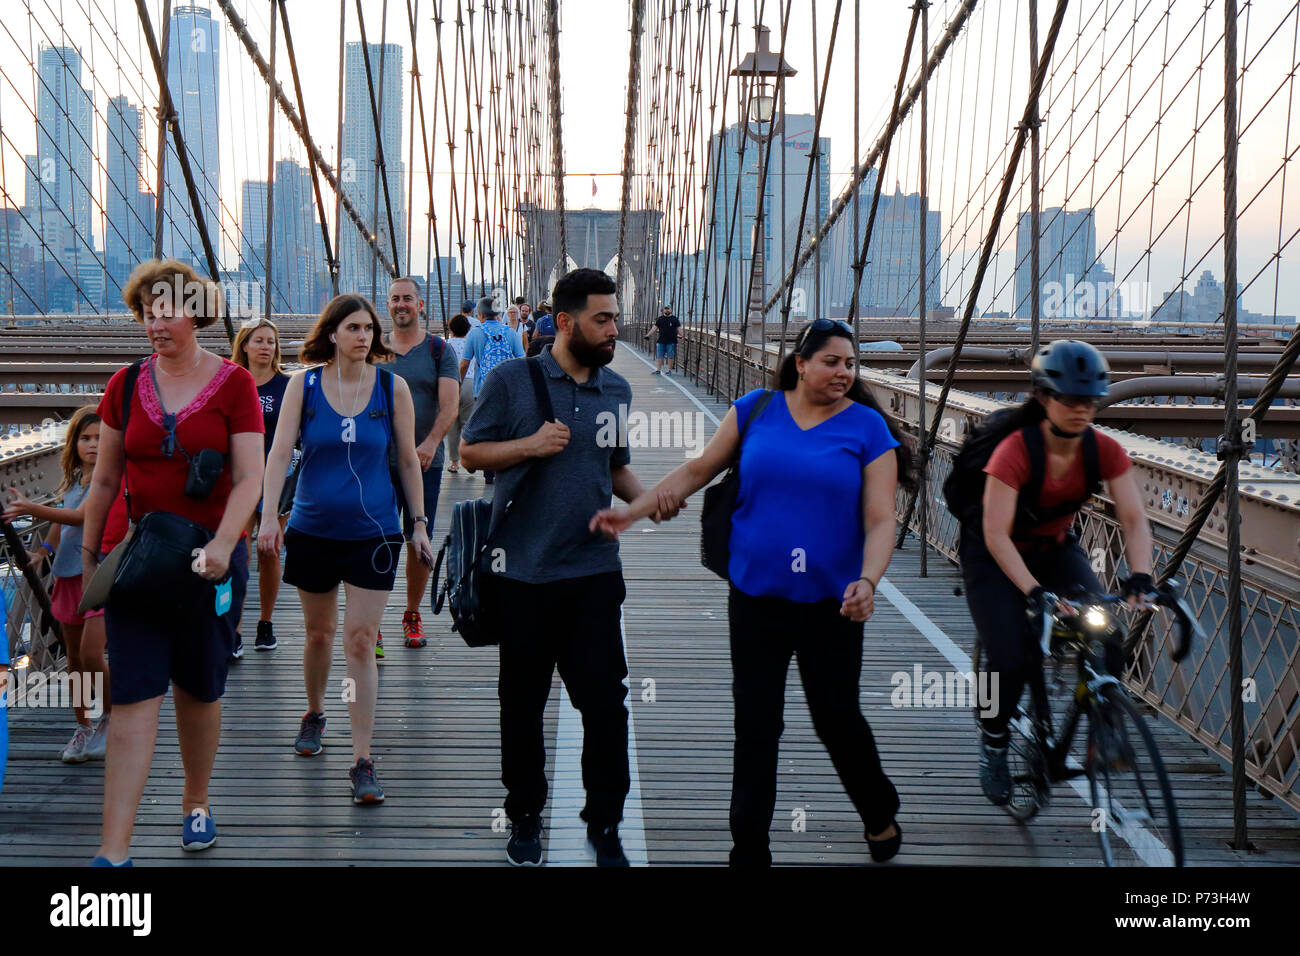 Pedestrians, and cyclists avoid conflict on the Brooklyn Bridge foot path. - Stock Image